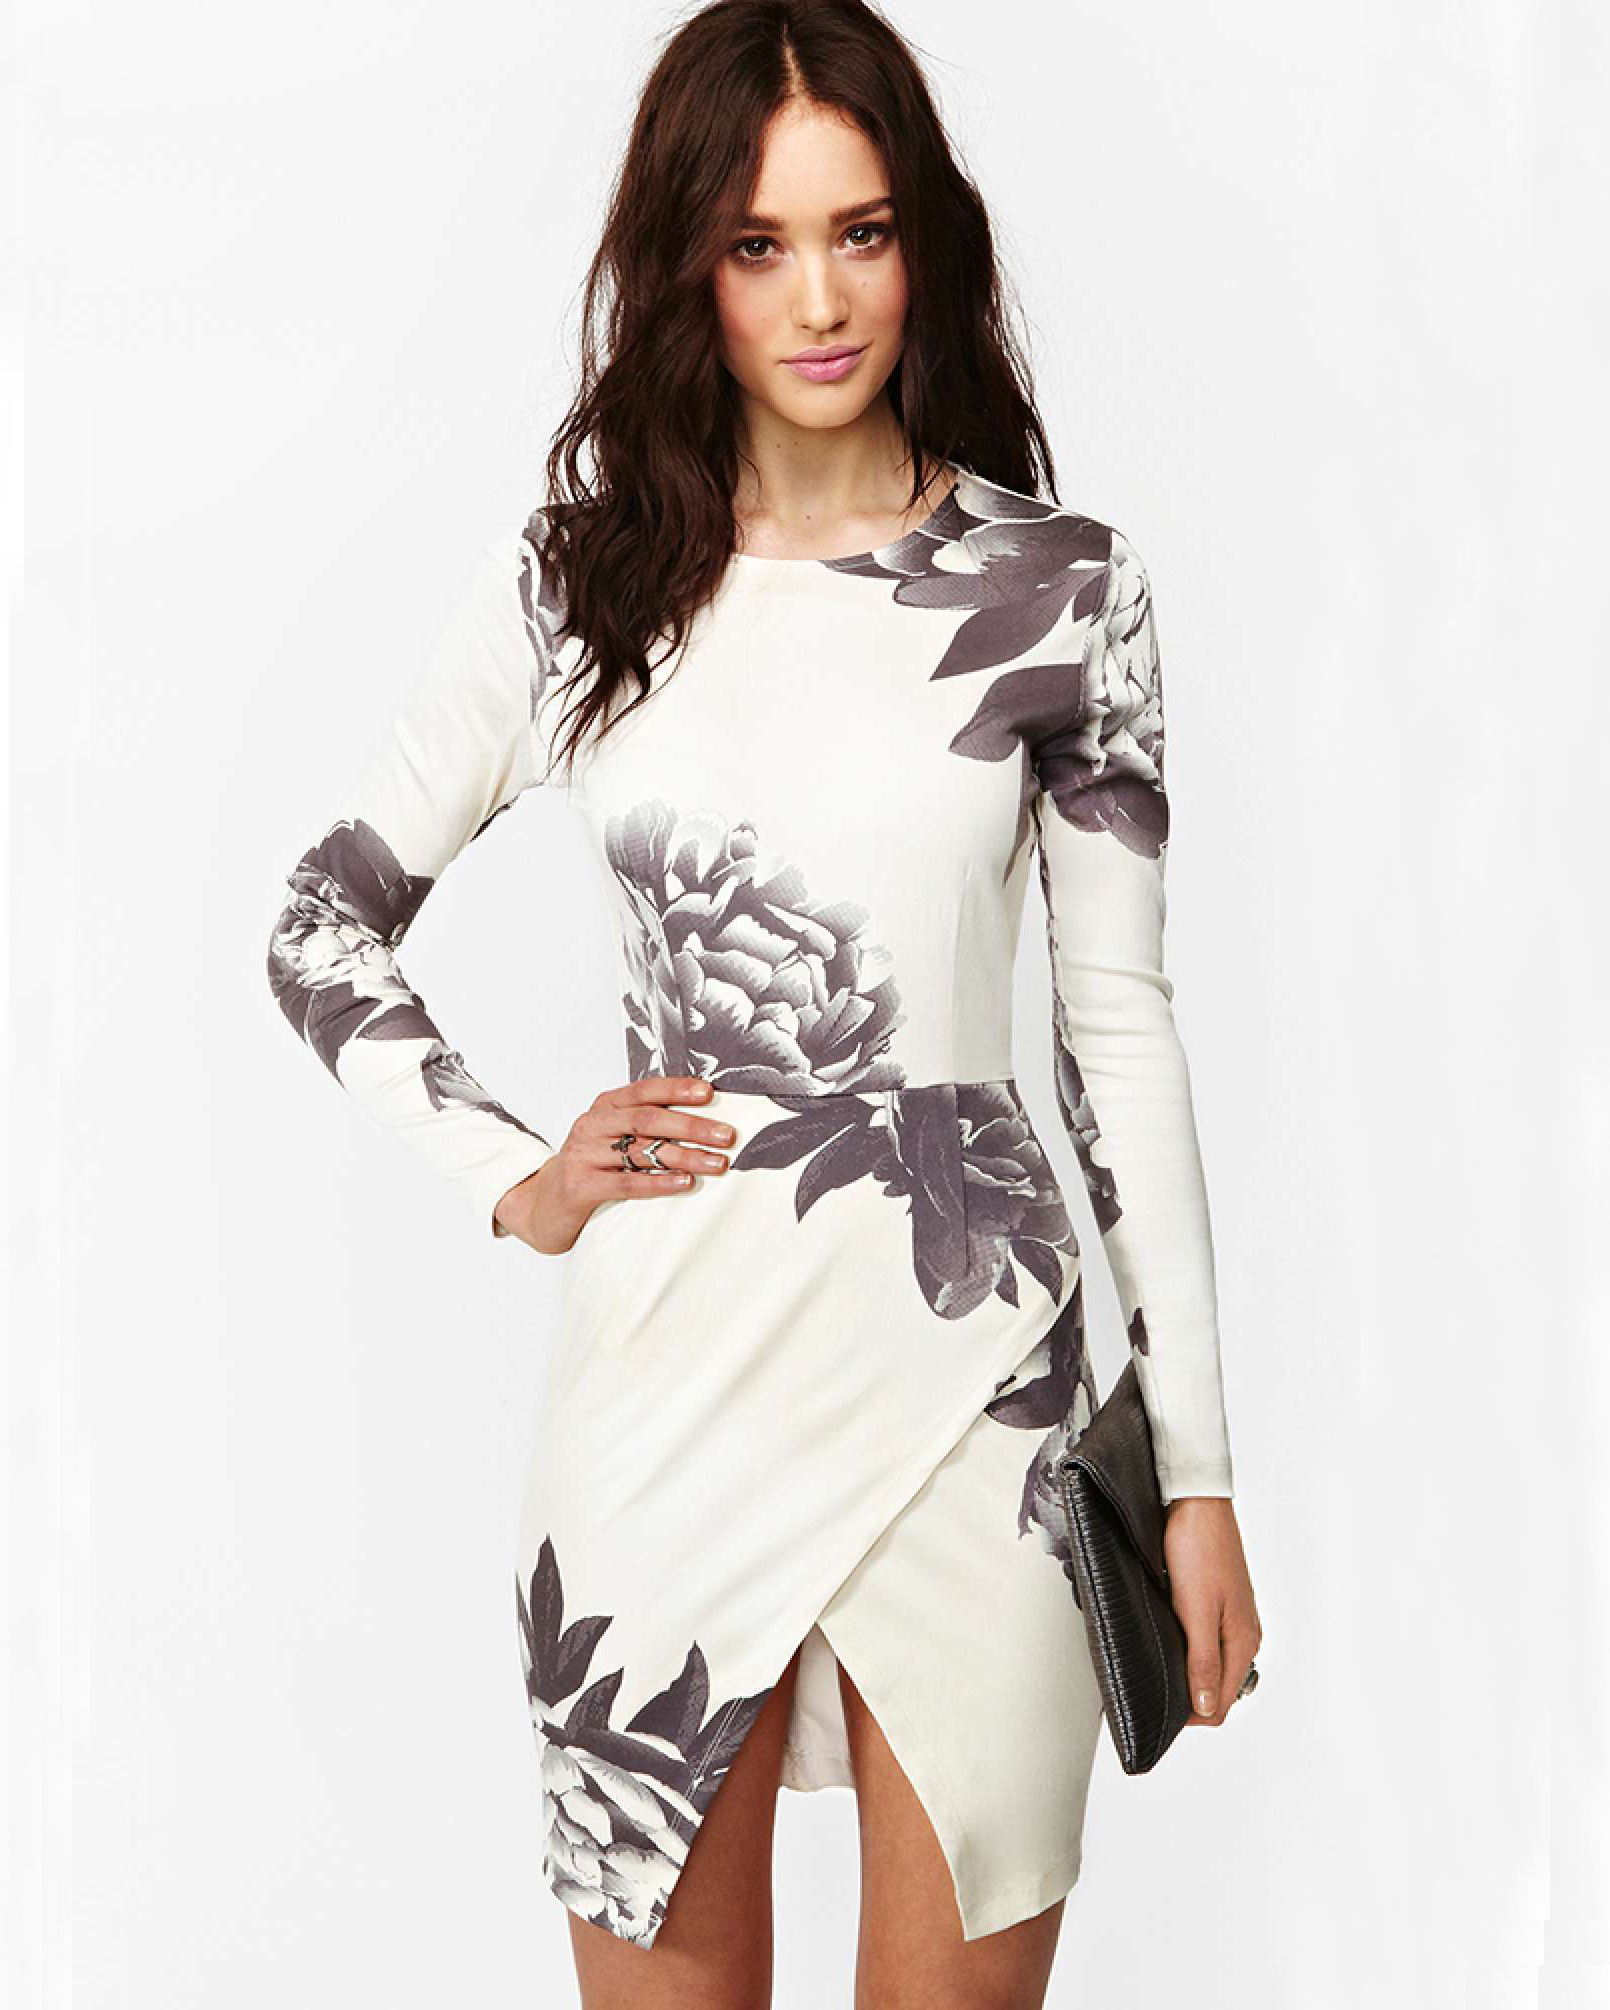 White Long Sleeve Random Floral Print Wrap Dress - Sheinside.com f20fa5a6b